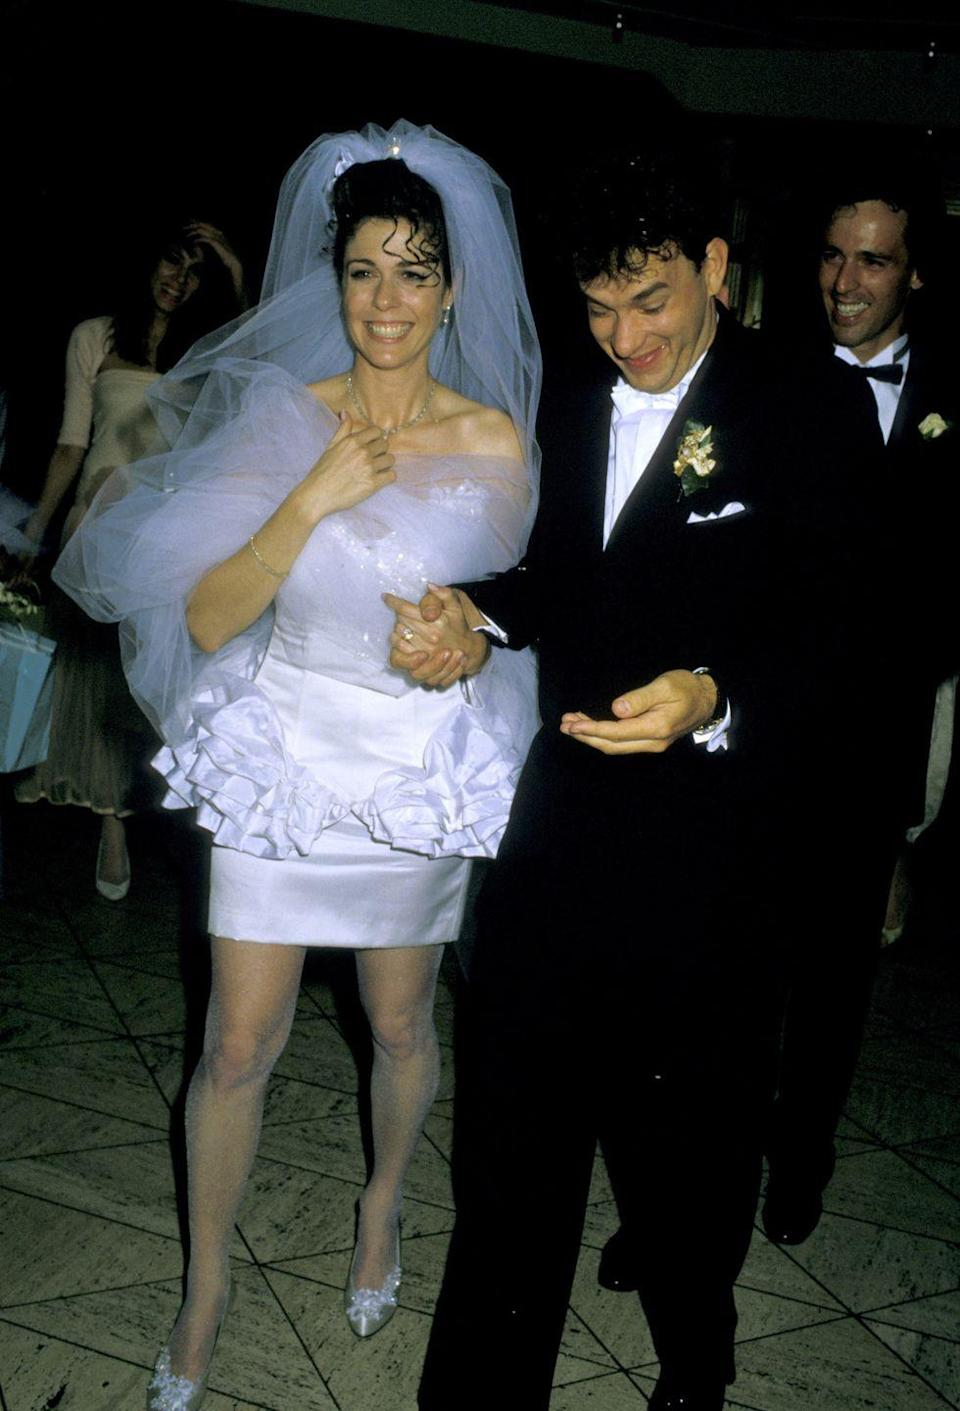 """<p>Rita Wilson and Tom Hanks can barely contain their excitement after their Las Vegas nuptials in 1988. The couple met as costars in the 1984 film <em>Volunteers</em> and <a href=""""https://www.goodhousekeeping.com/life/entertainment/g3131/tom-hanks-rita-wilson-marriage"""" rel=""""nofollow noopener"""" target=""""_blank"""" data-ylk=""""slk:noticed an immediate spark"""" class=""""link rapid-noclick-resp"""">noticed an immediate spark</a>.</p>"""